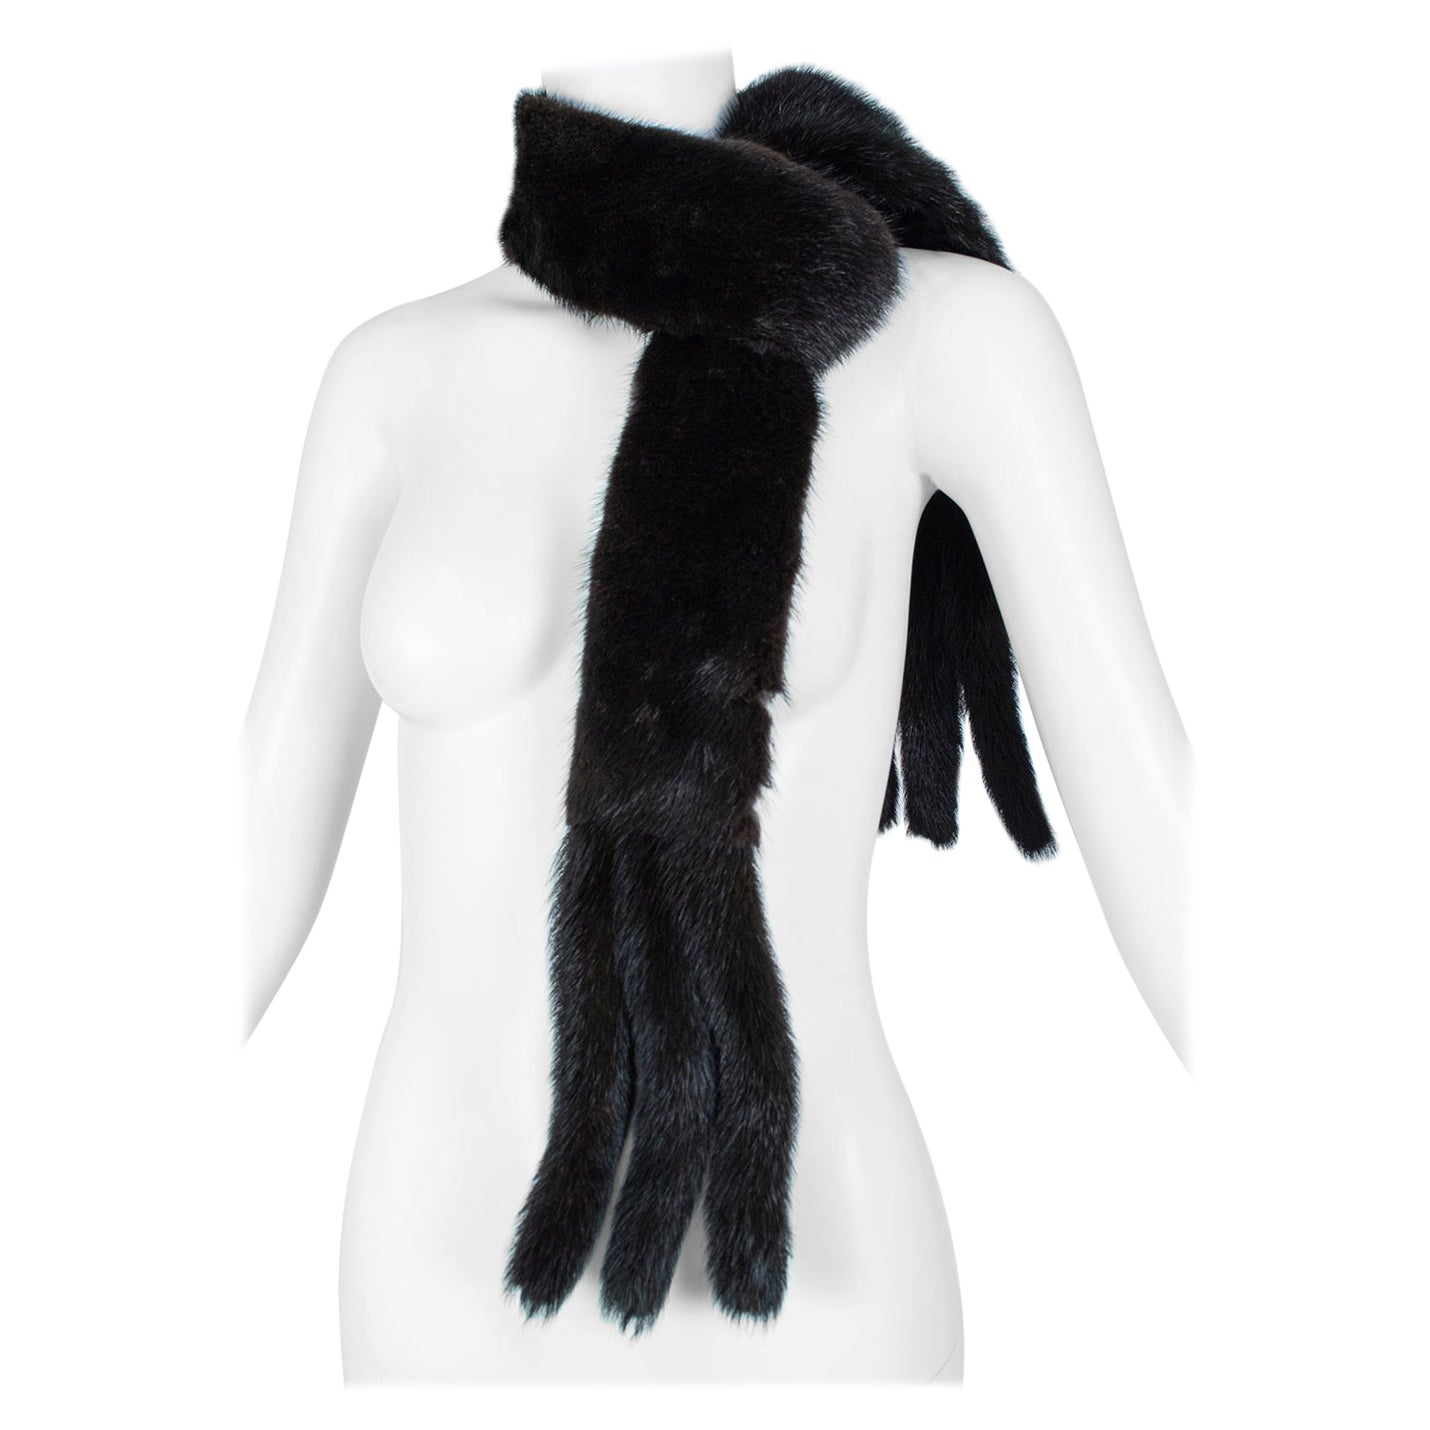 Black Mink Skinny Scarf or Belt with Tails – One Size, 1950s